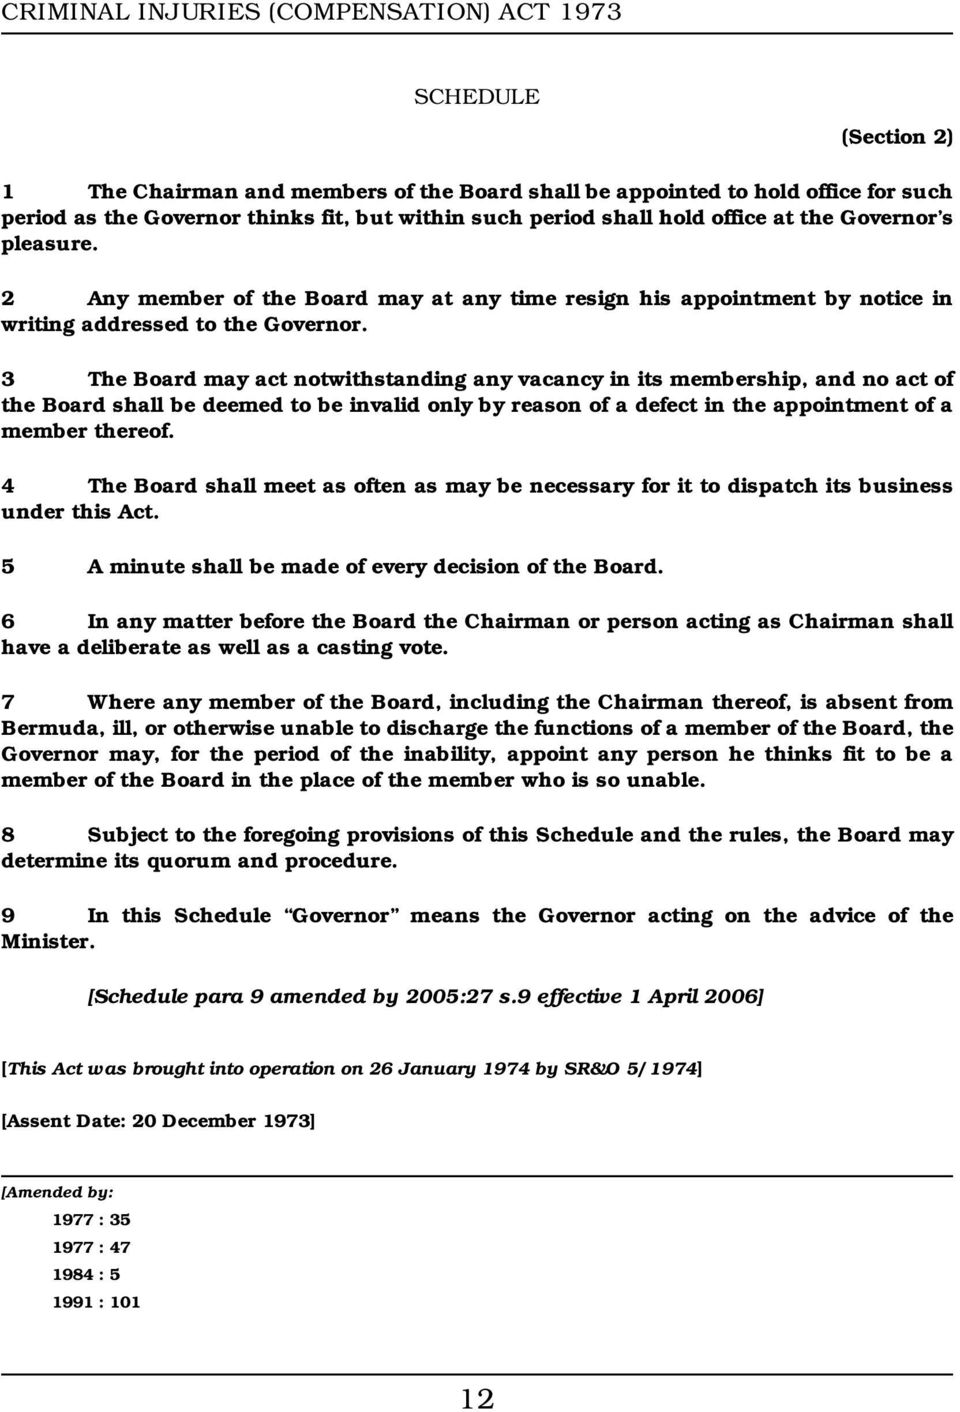 3 The Board may act notwithstanding any vacancy in its membership, and no act of the Board shall be deemed to be invalid only by reason of a defect in the appointment of a member thereof.